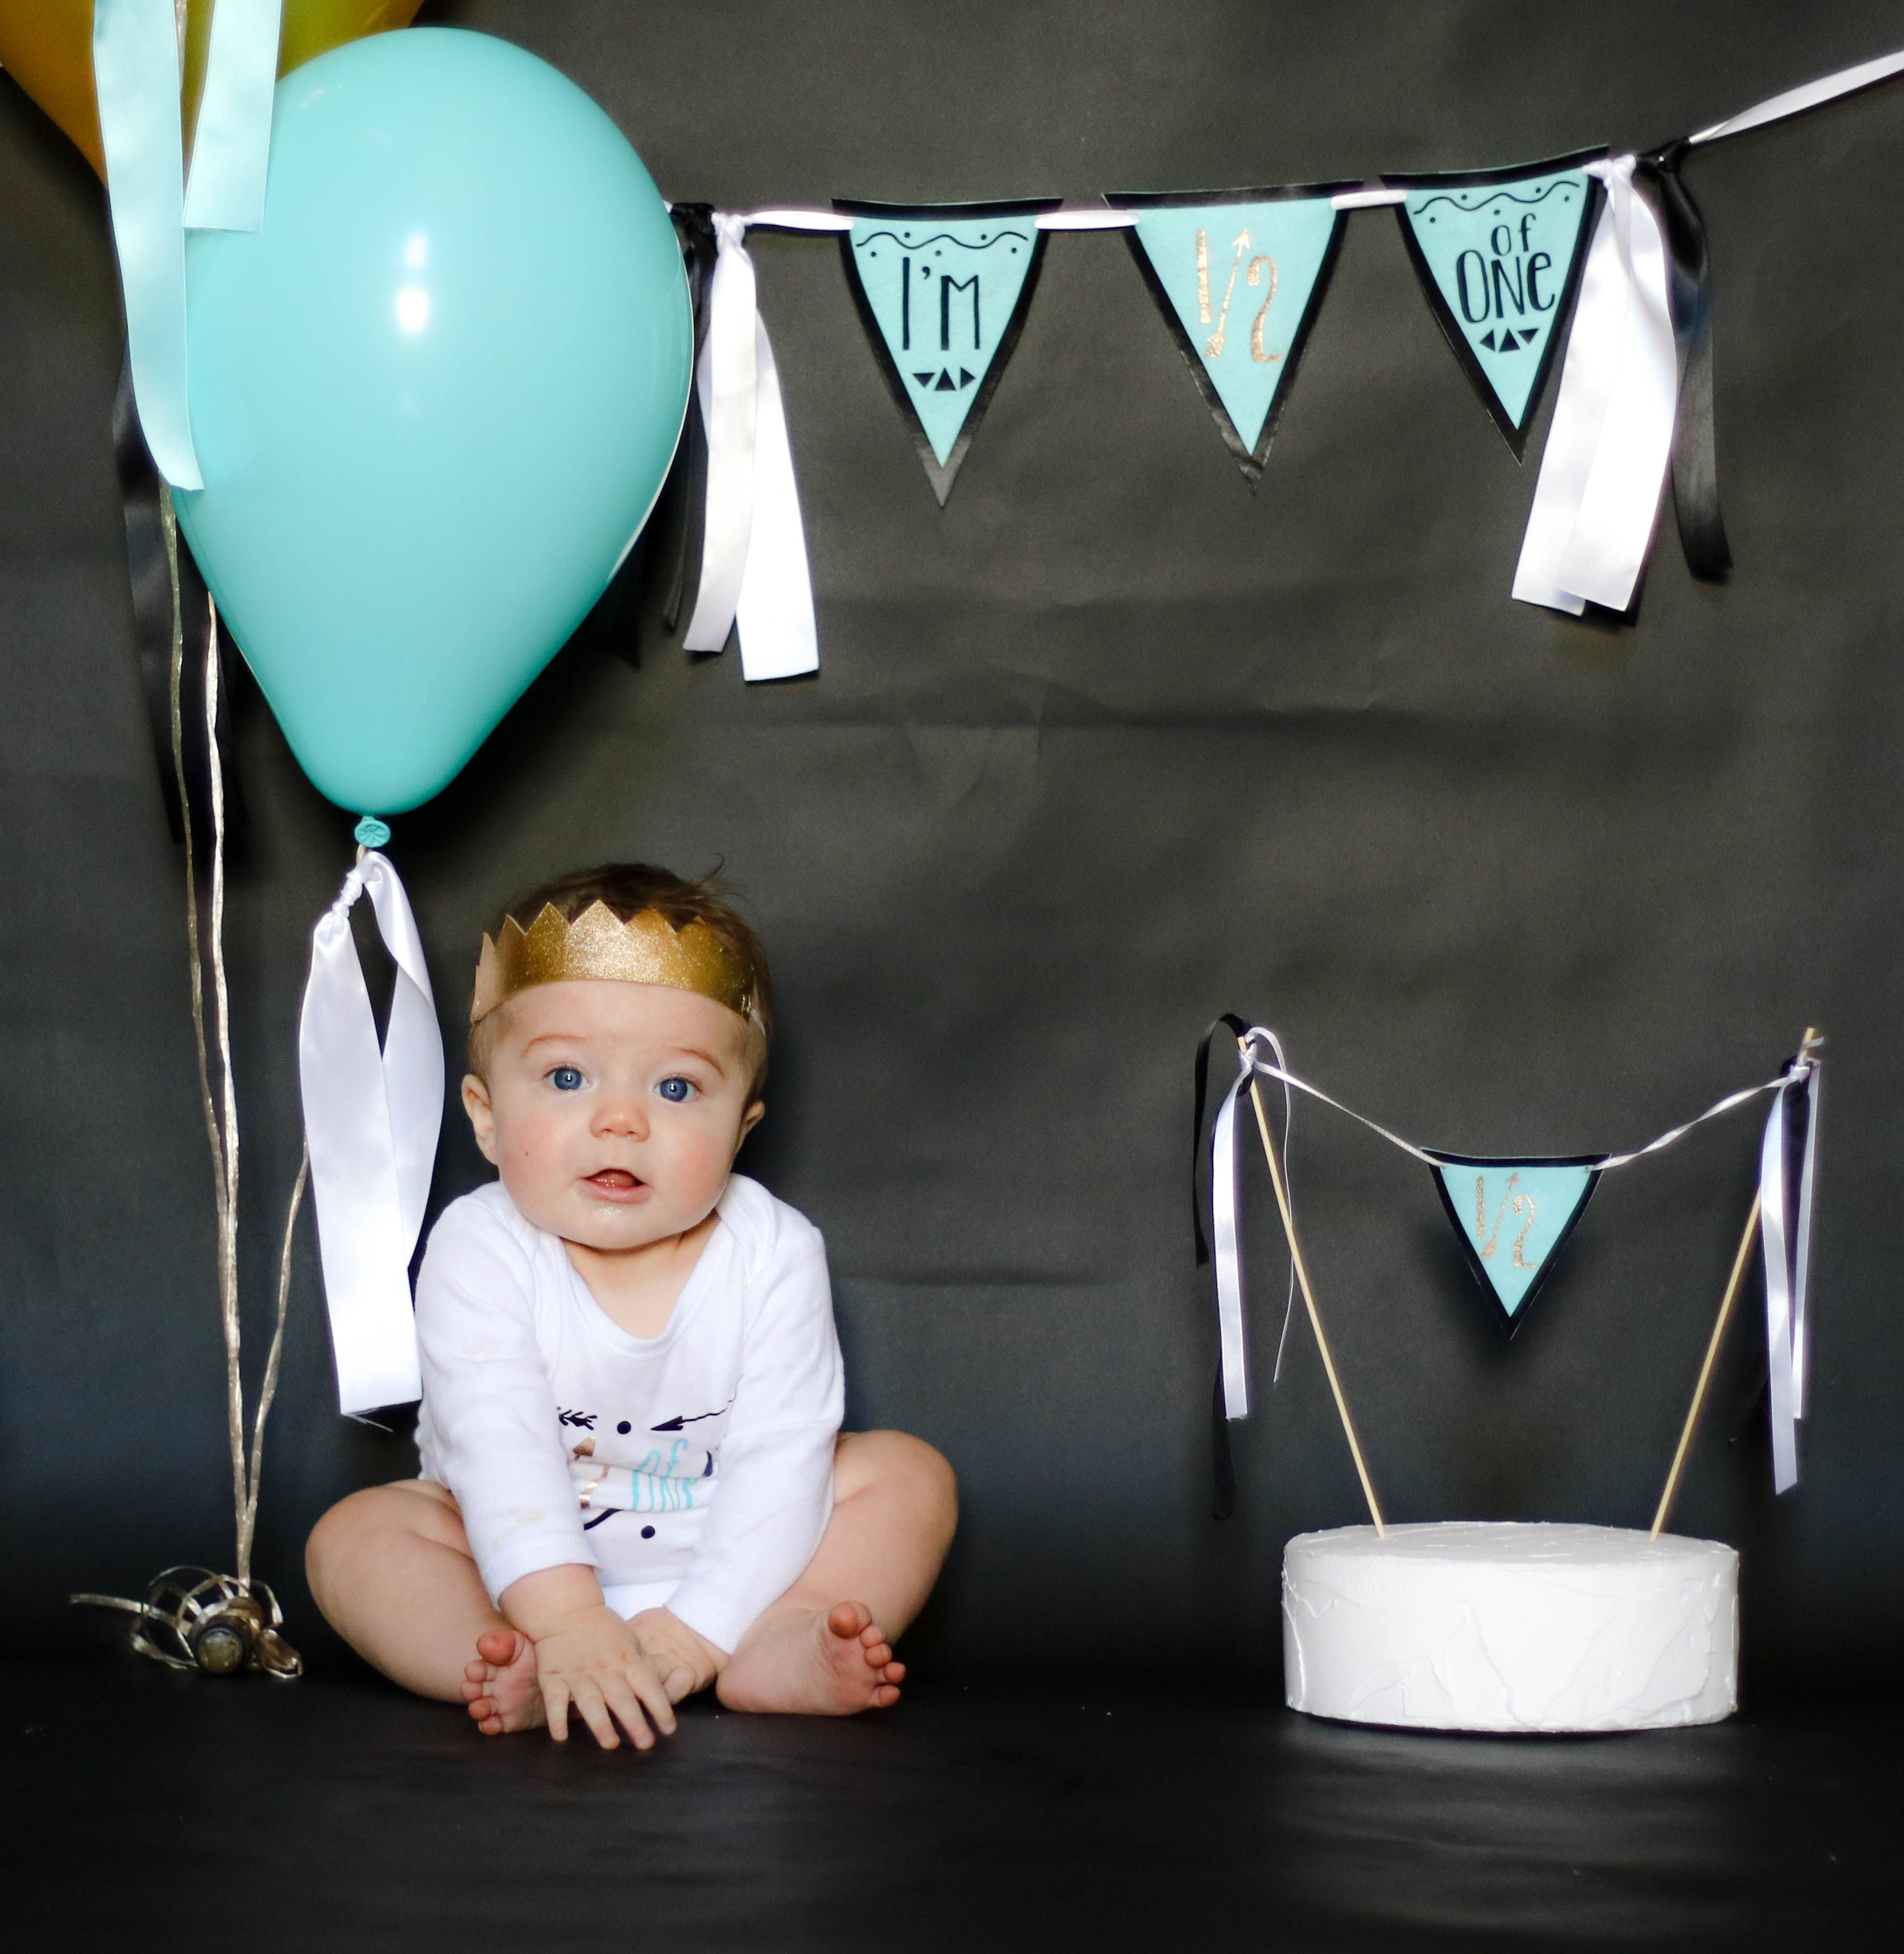 374e558f Half Birthday celebration! Celebrate your baby boy's six month 1/2 birthday  with this perfectly coordinated outfit and decoration set in gold, black,  ...